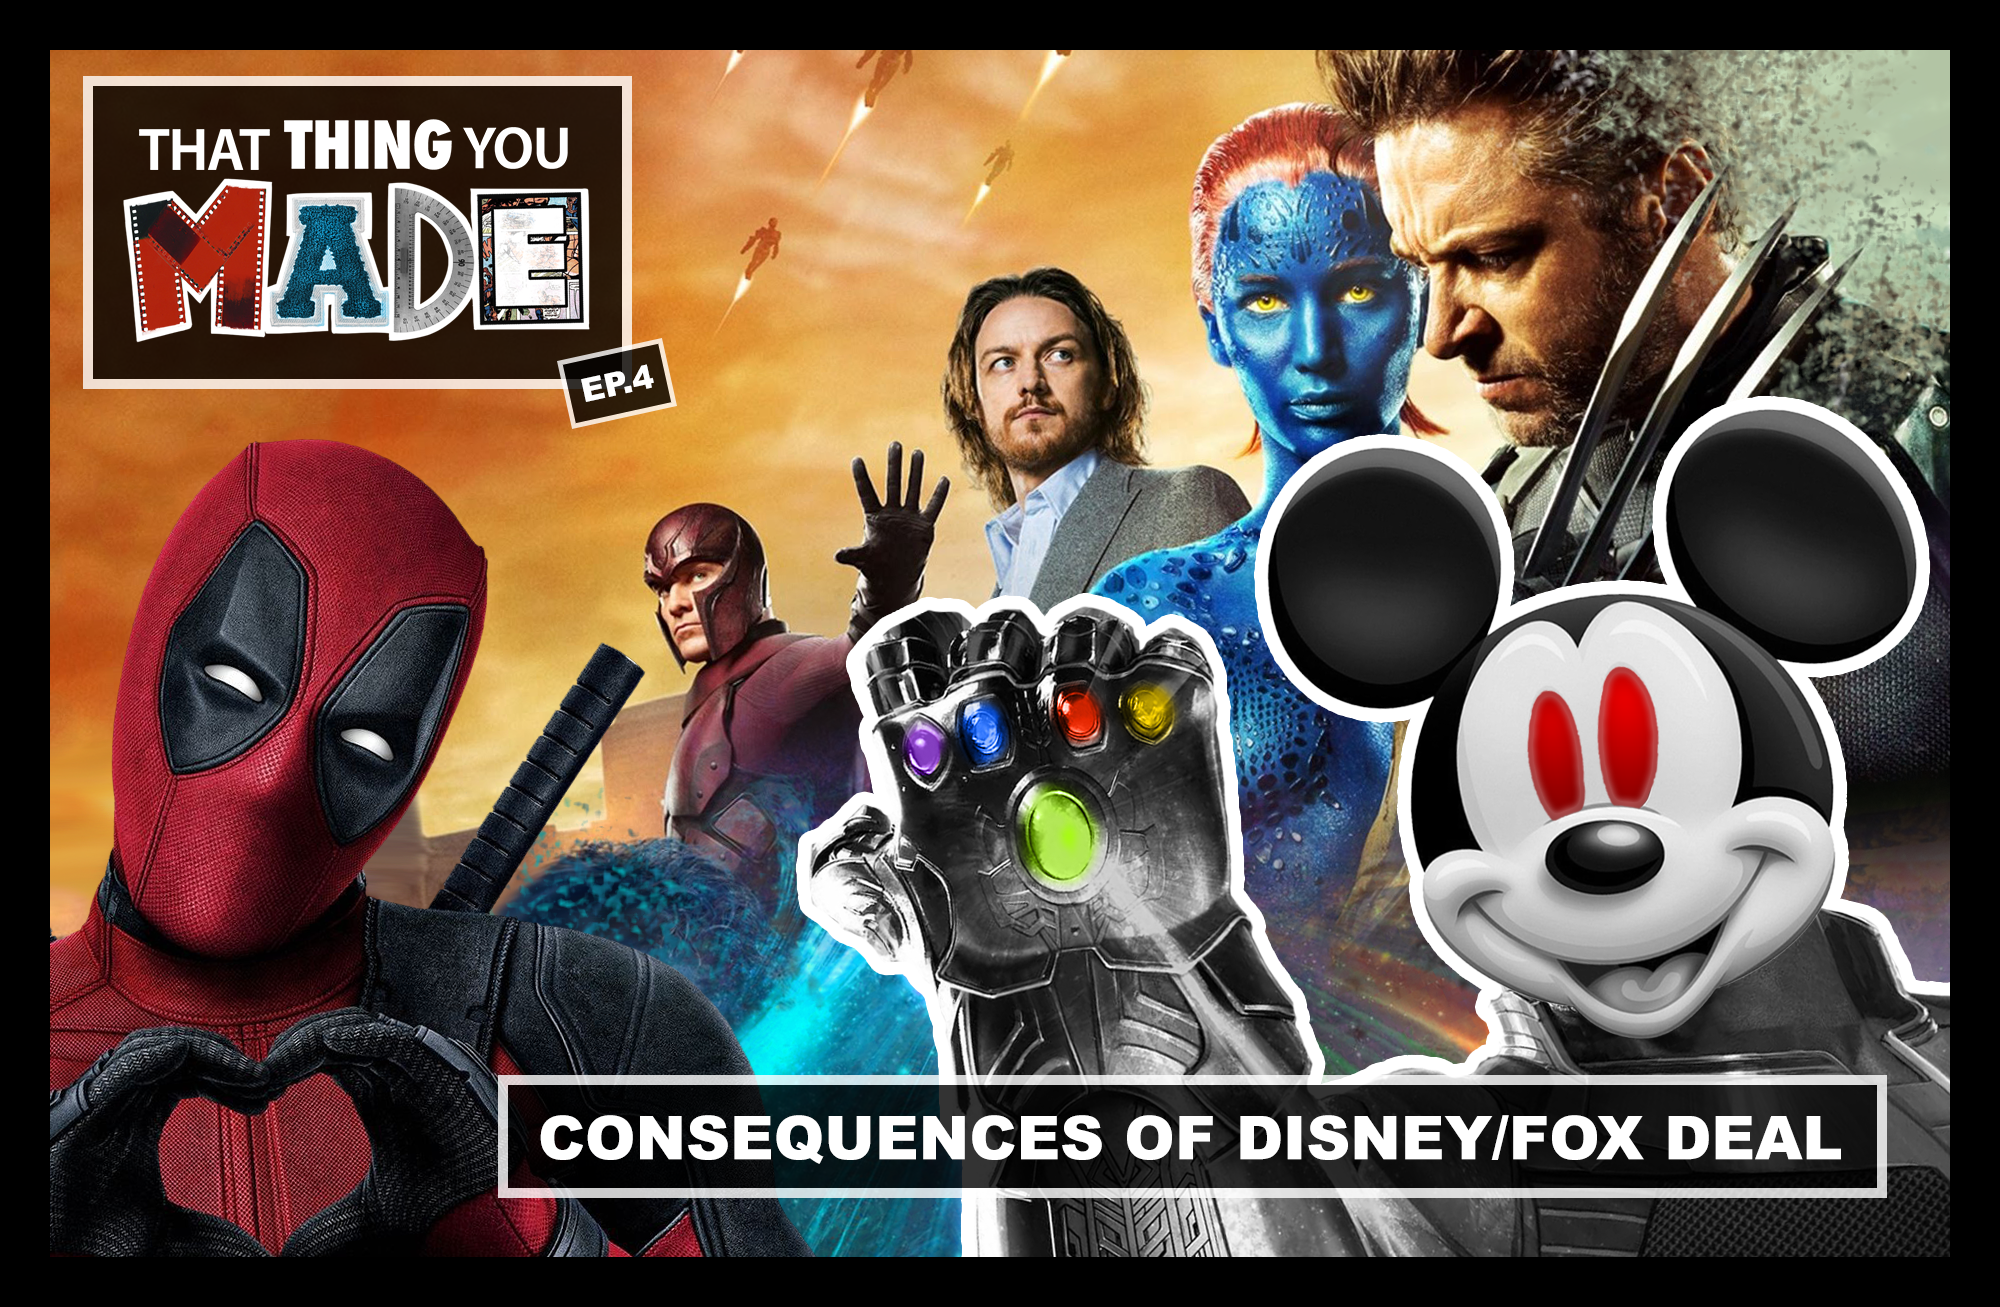 ThatThingYouMade-Episode4-DisneyMarvelFoxDeal-Cover.png